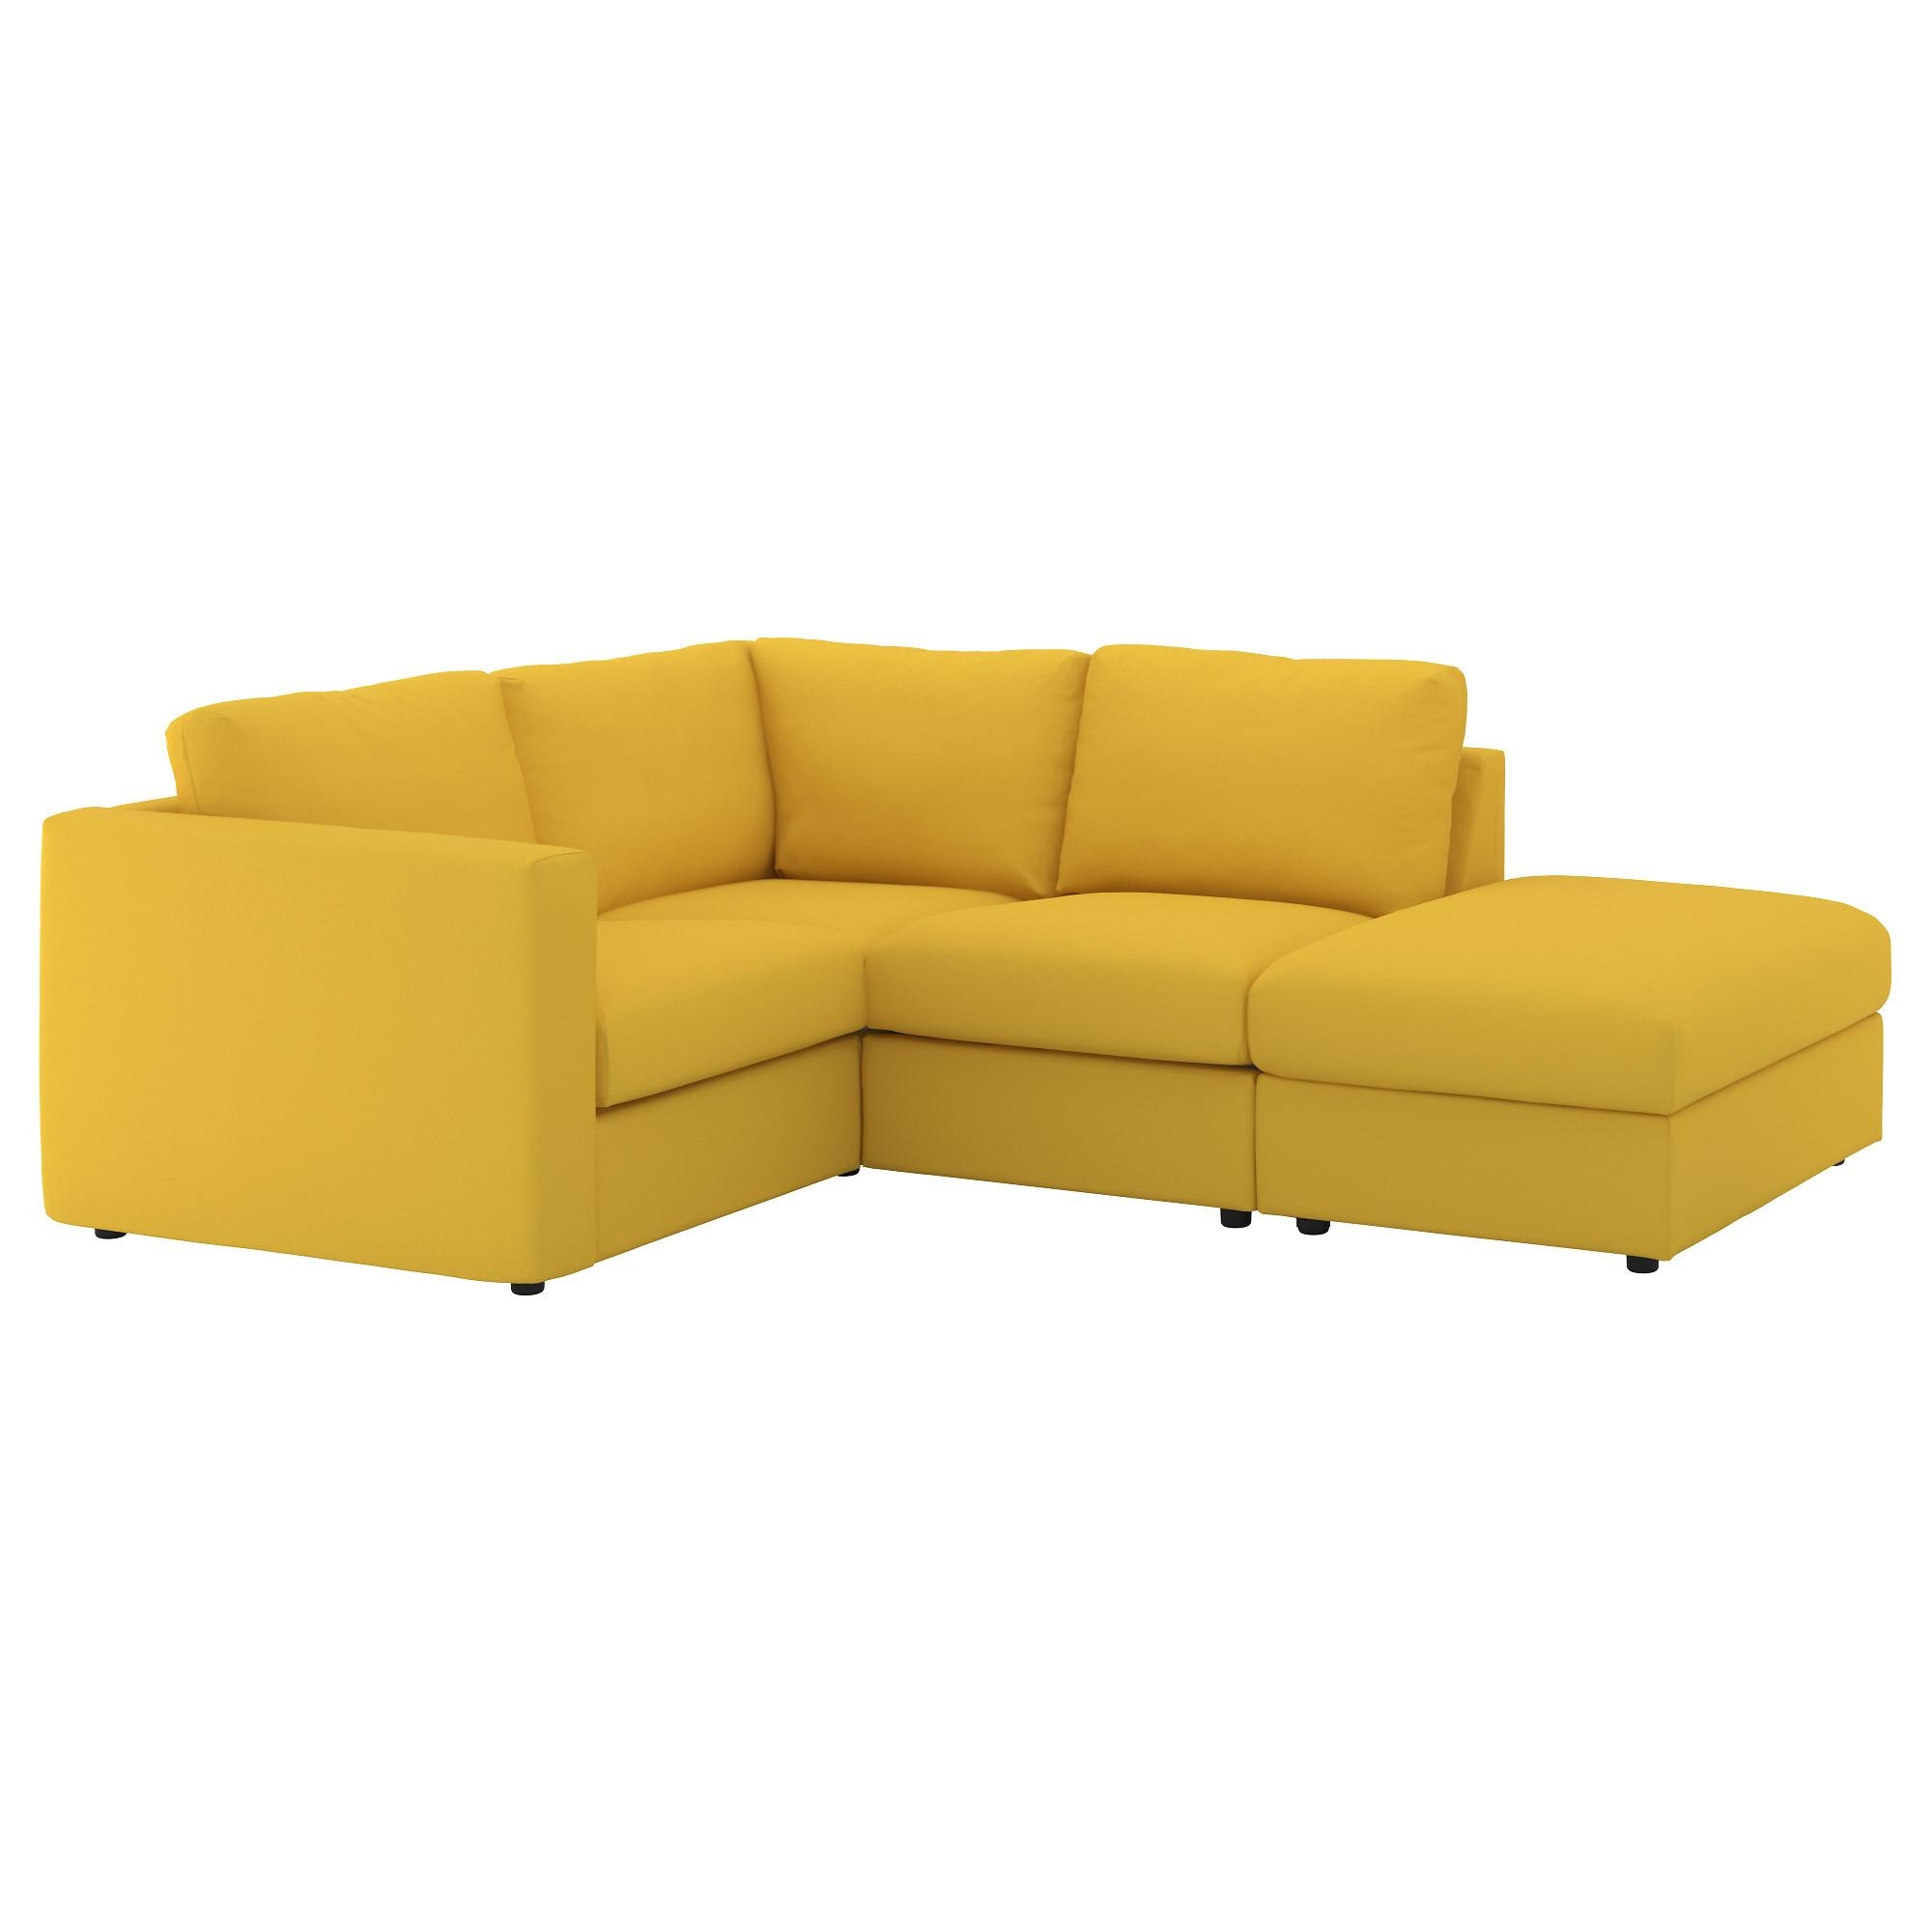 Vimle Corner Sofa, 3 Seat With Open End/gräsbo Golden Yellow – Ikea For Corner Sofas (Image 19 of 20)